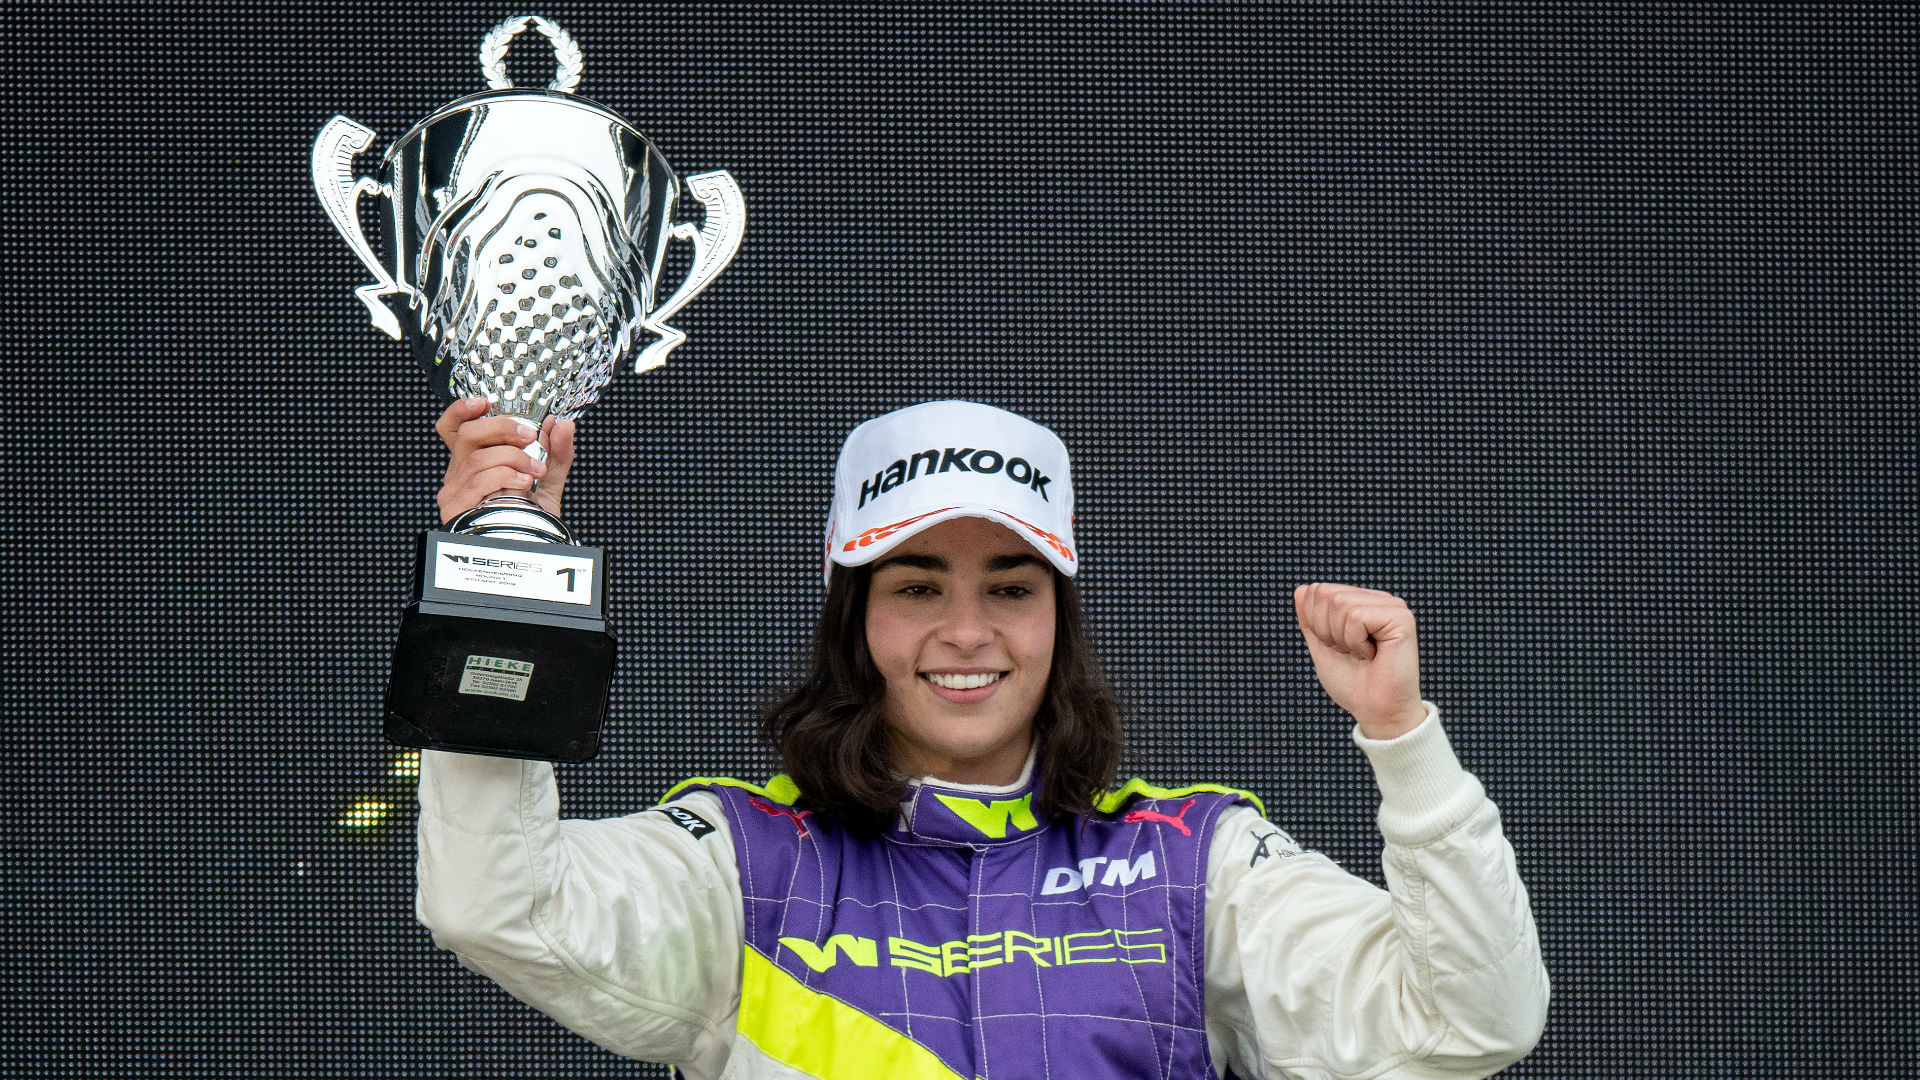 Record-breaking female driver Chadwick lands Williams development chance